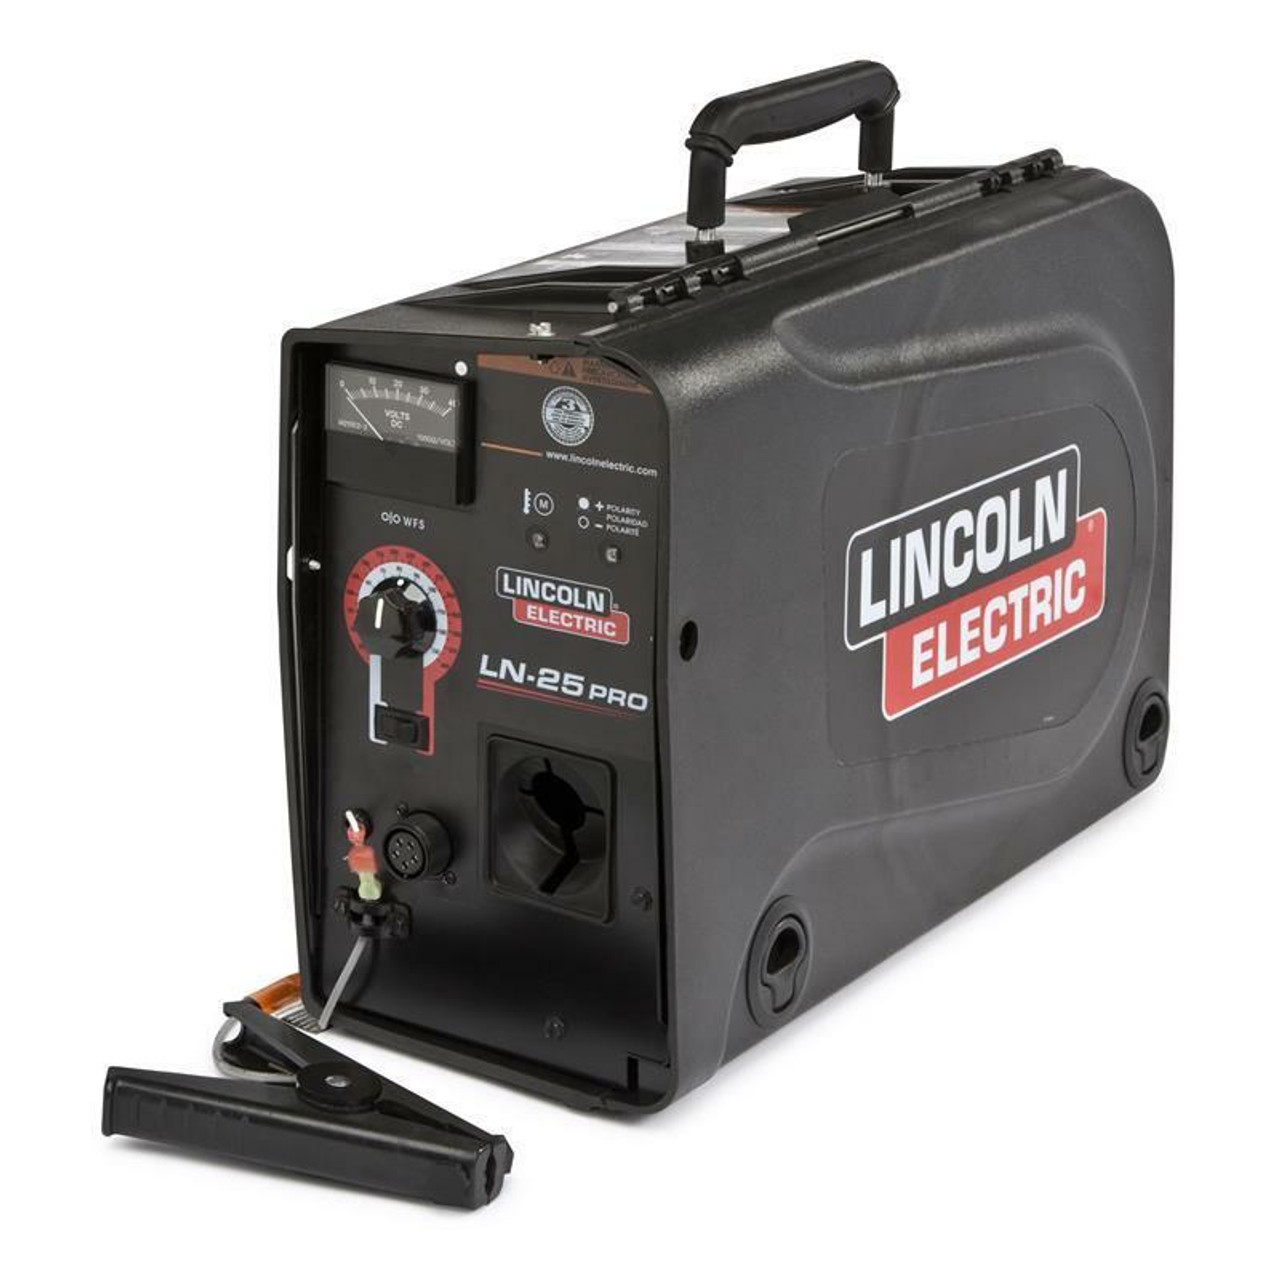 Lincoln LN-25 PRO Portable Industrial Wire Feeder K2613-5